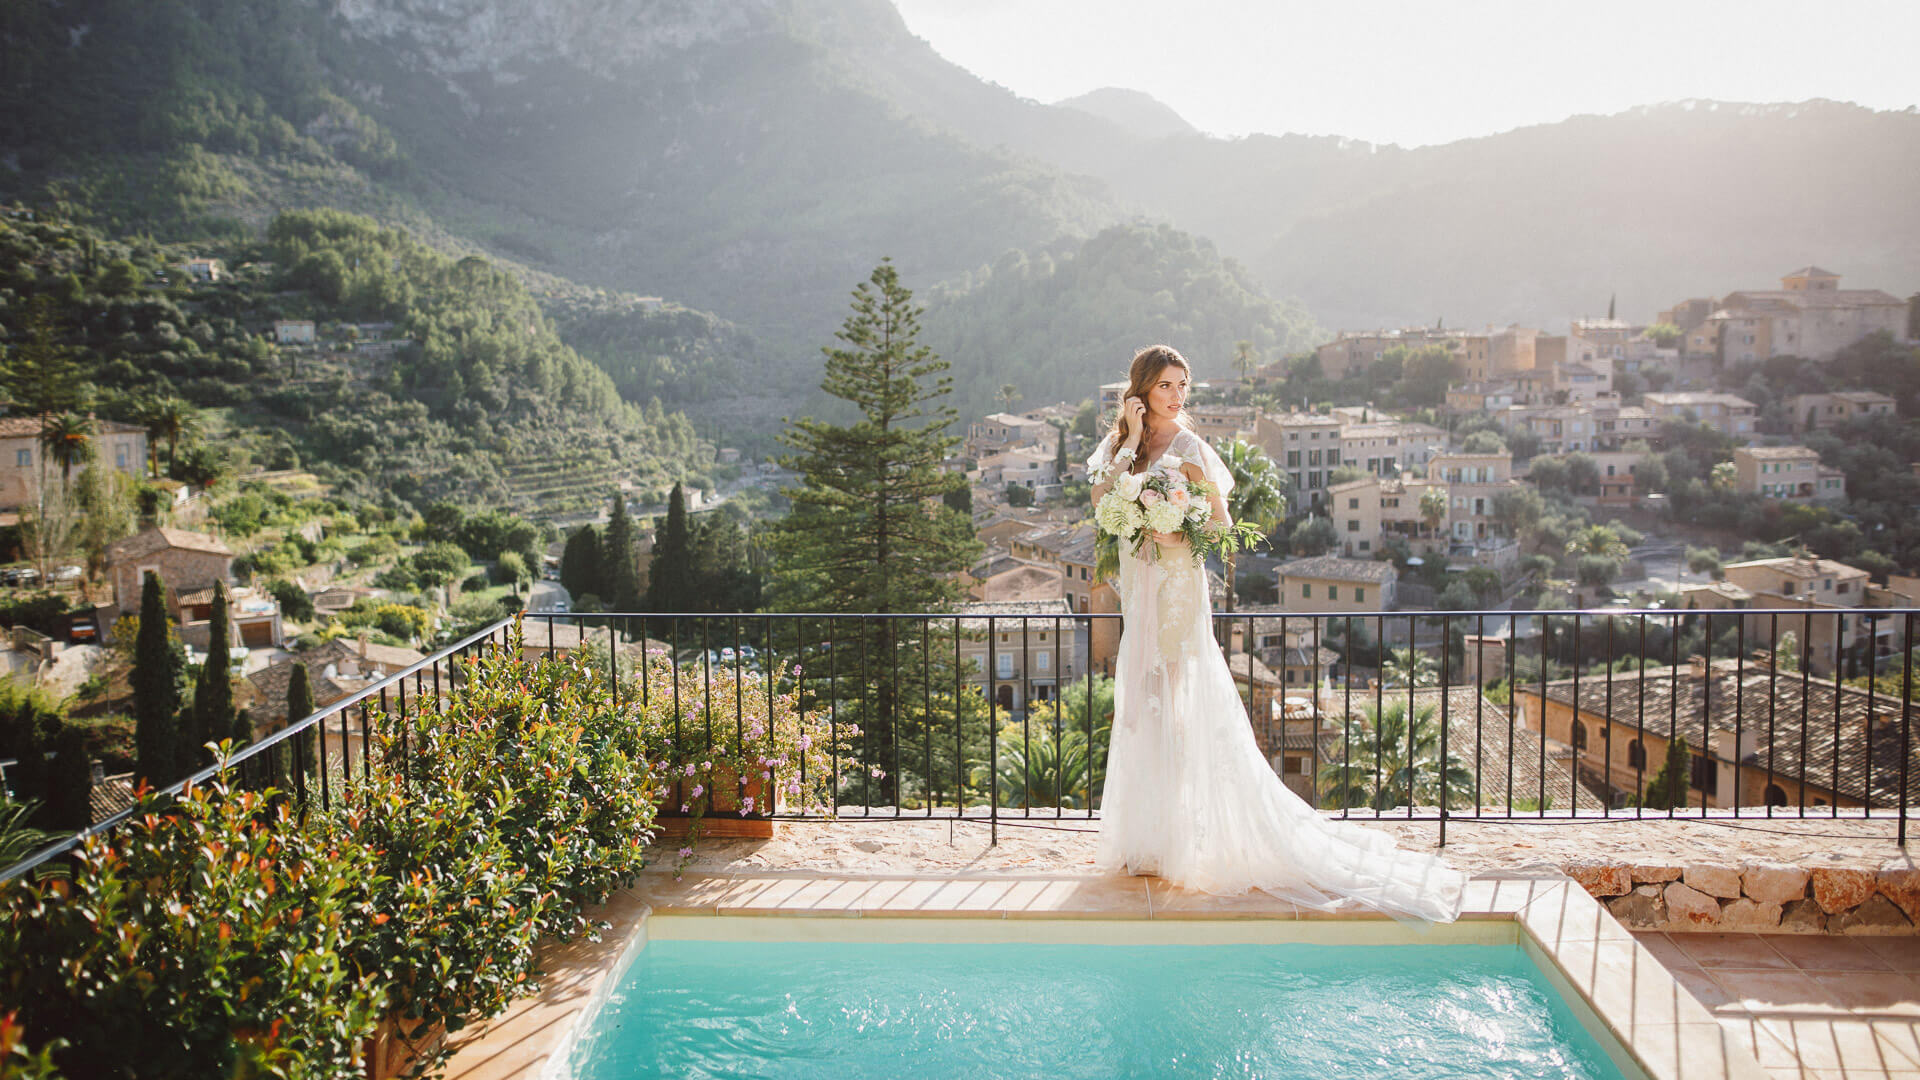 Hochzeitsfotograf Mallorca | Wedding Photographer Mallorca